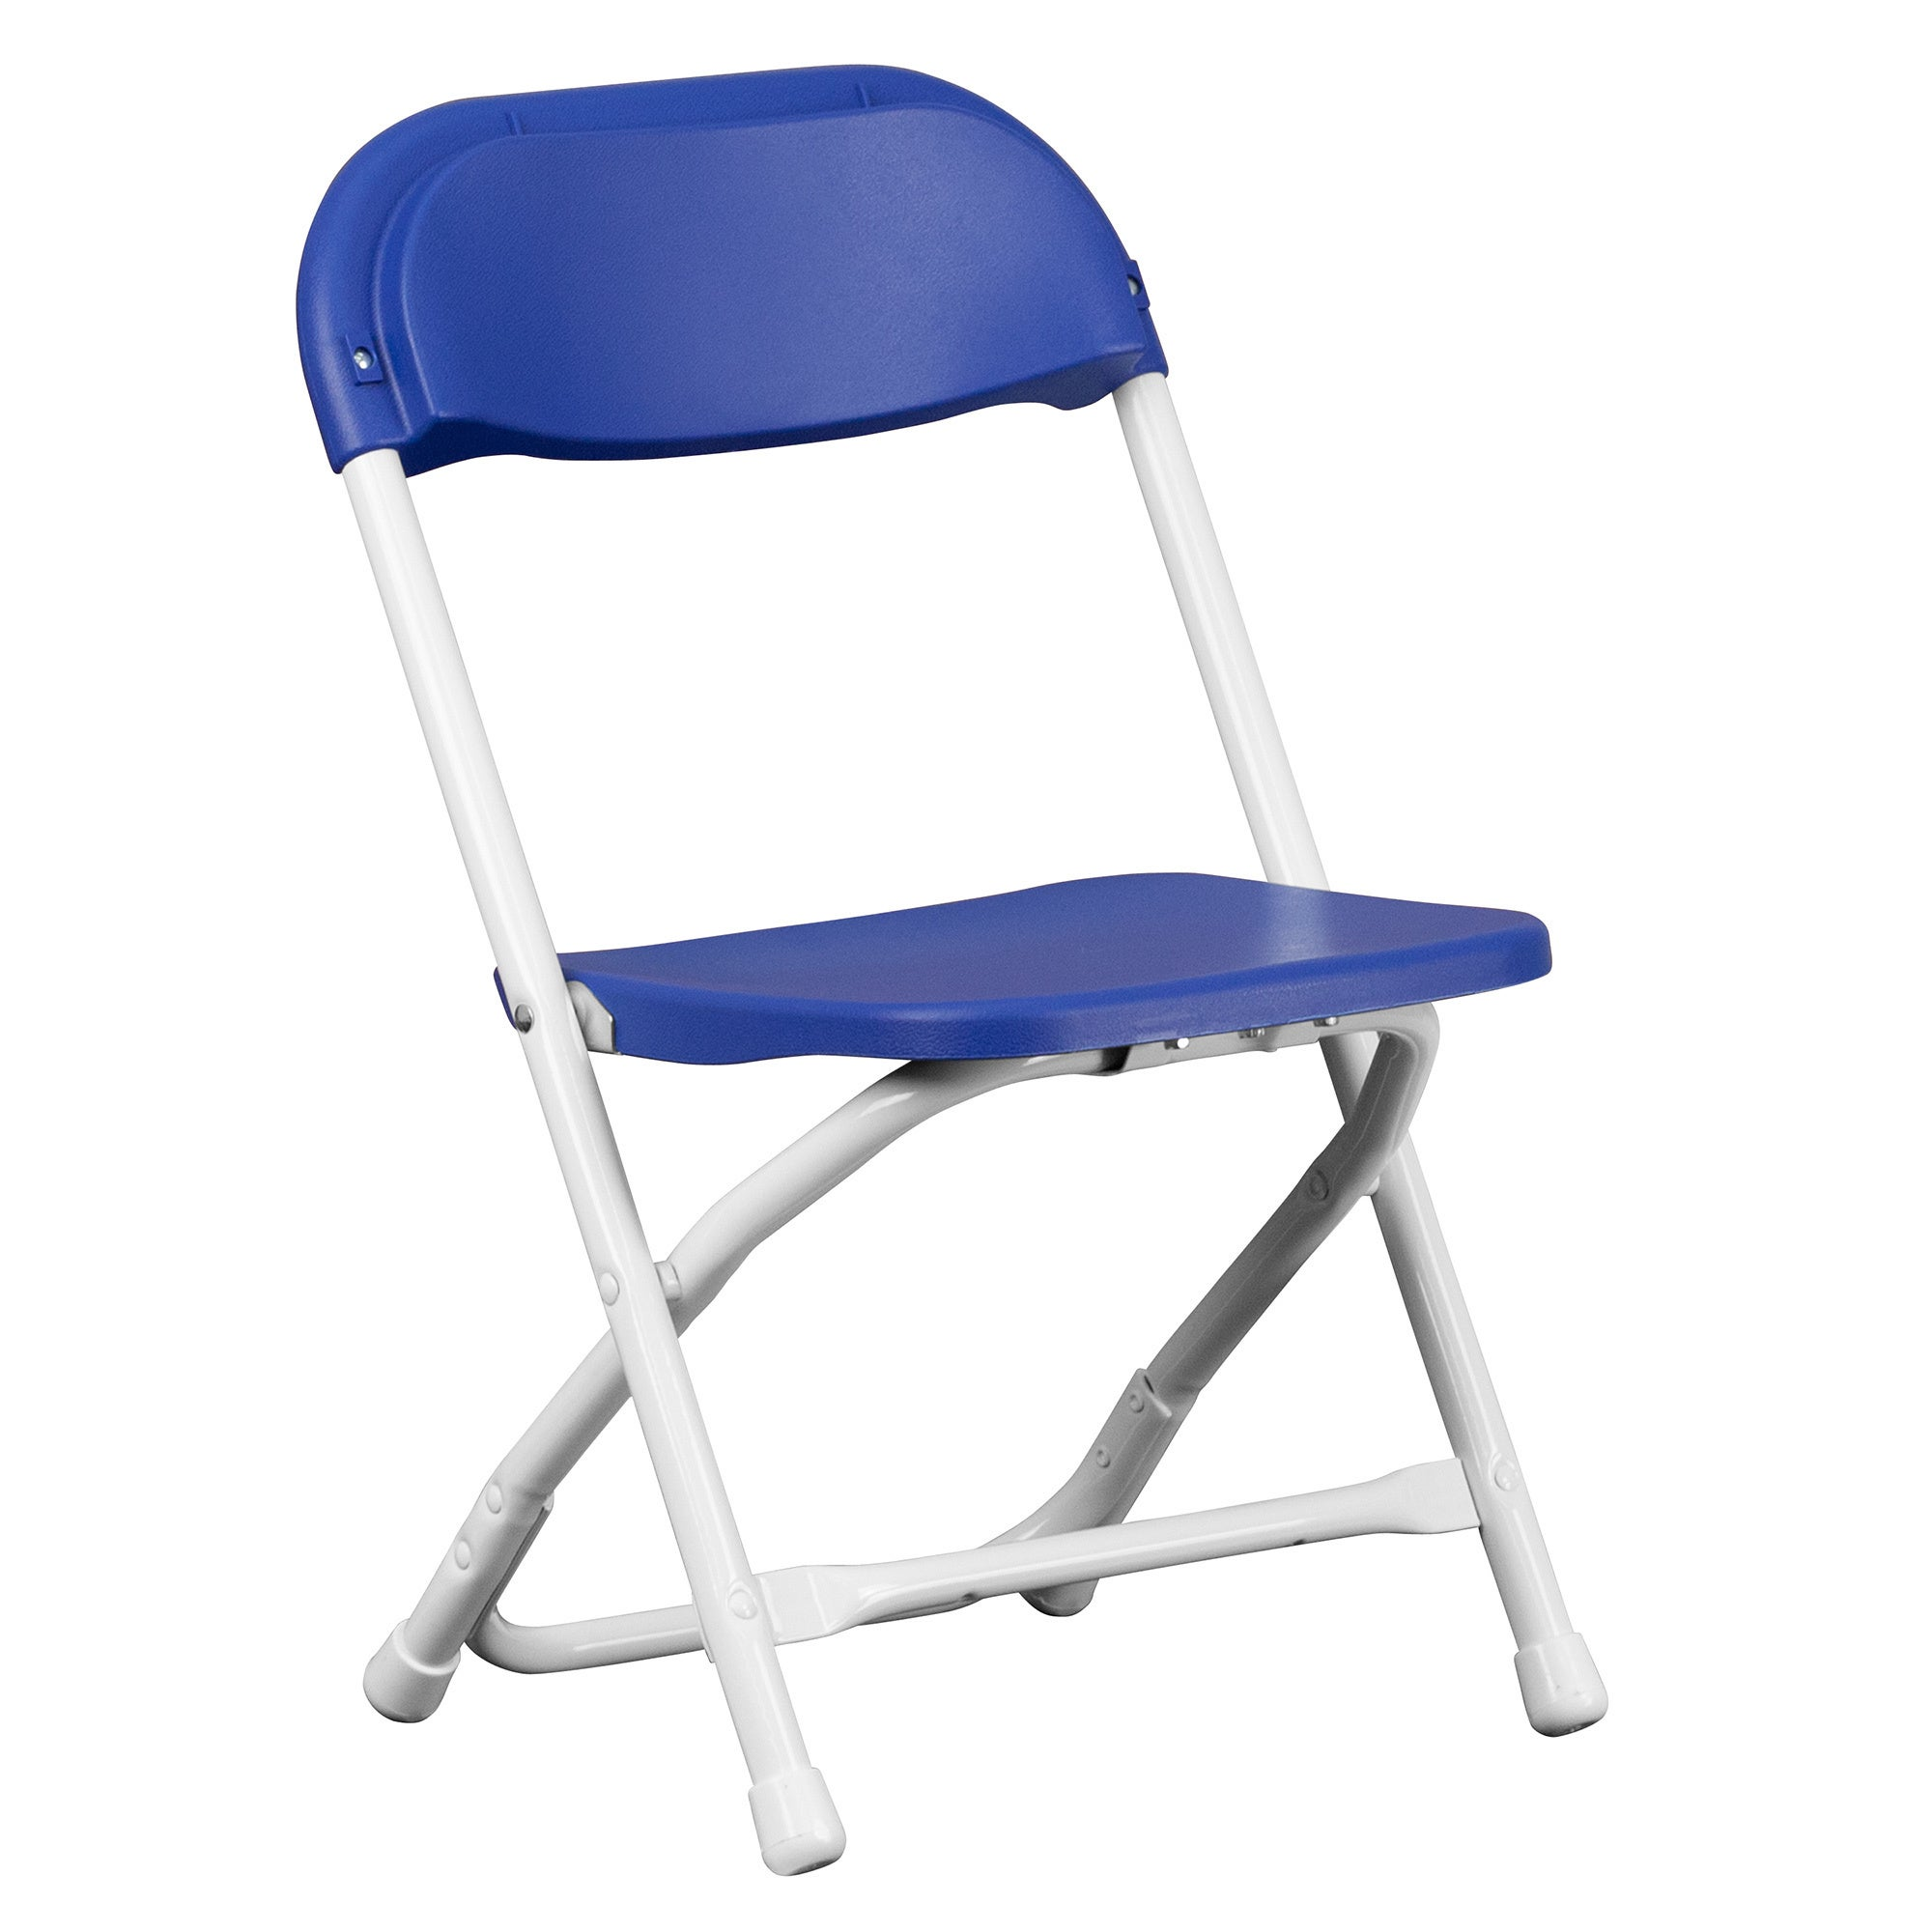 Folding Chairs Kids Toddler Online At Our Best Furniture Deals